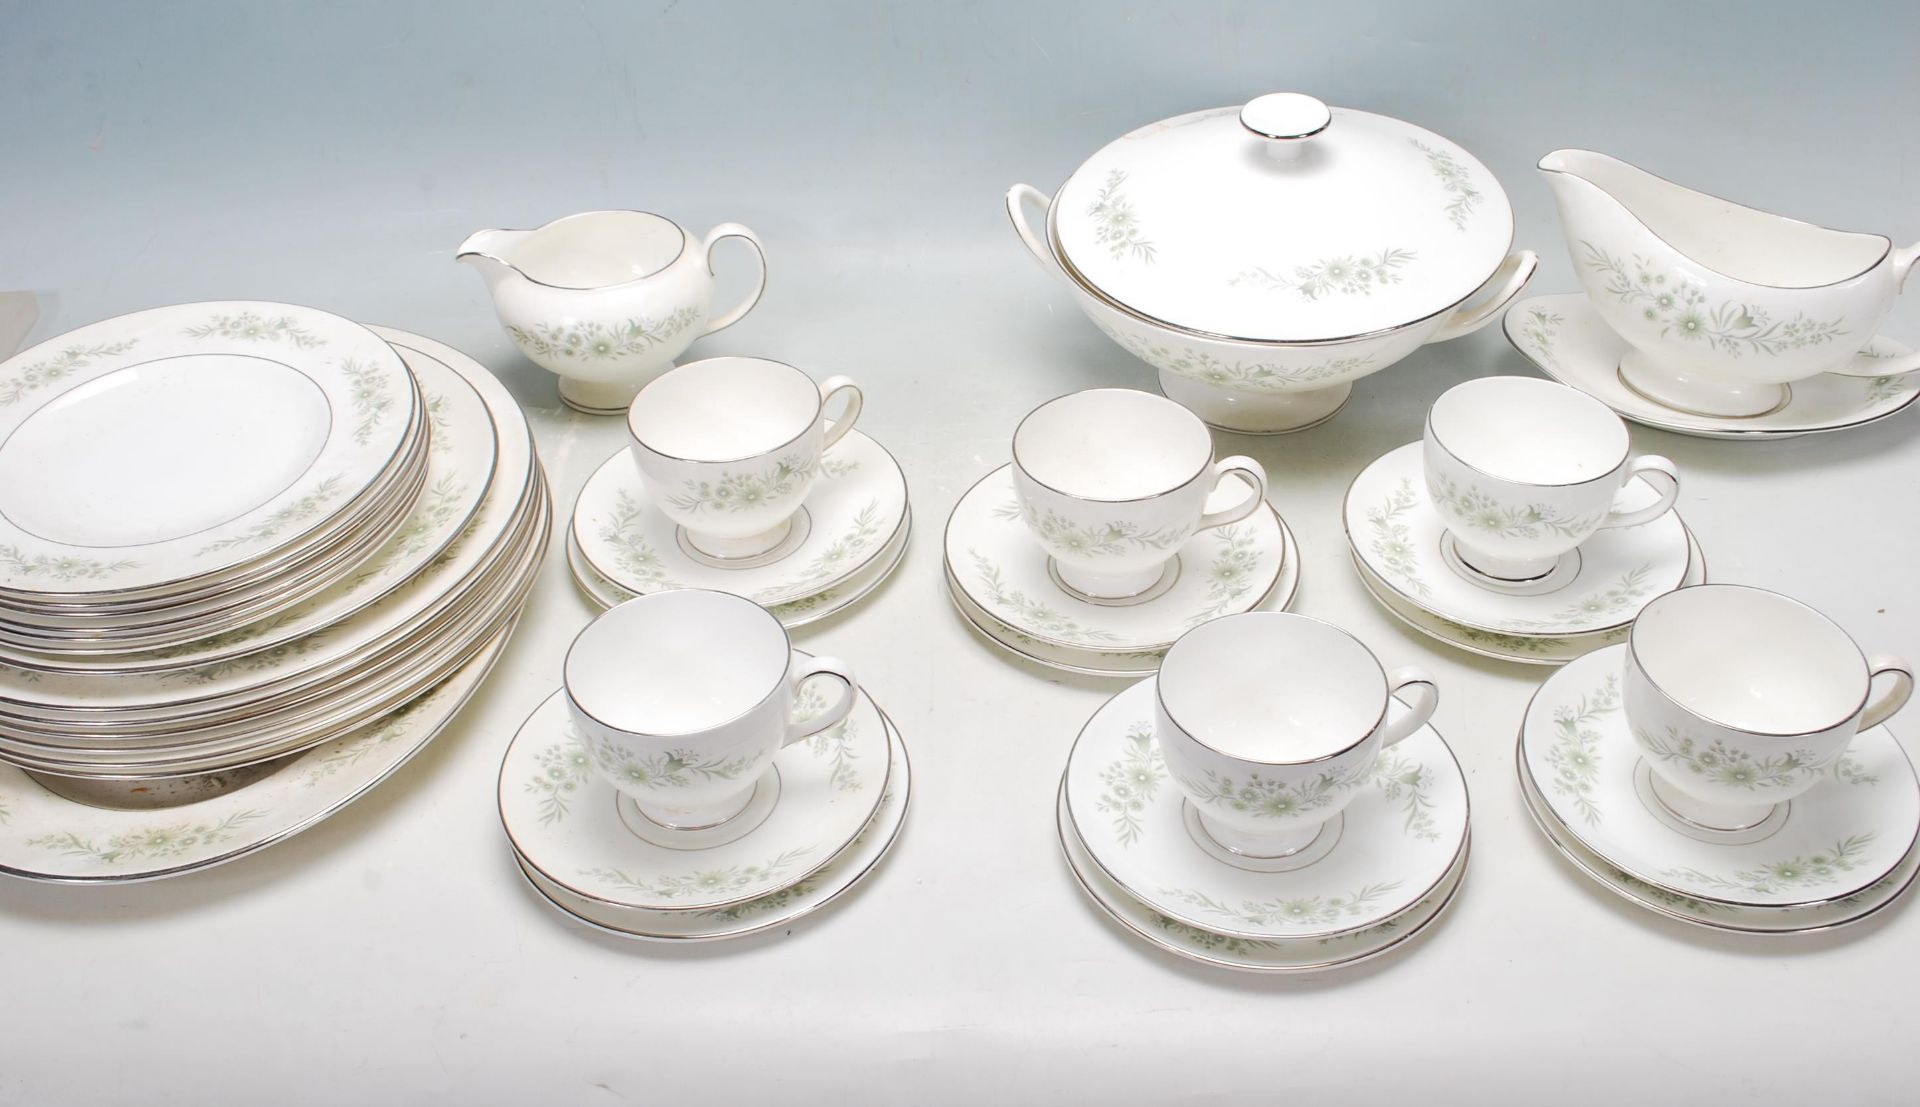 COLLECTION OF LATE 20TH CENTURY WEDGWOOD FINE BONE CHINA